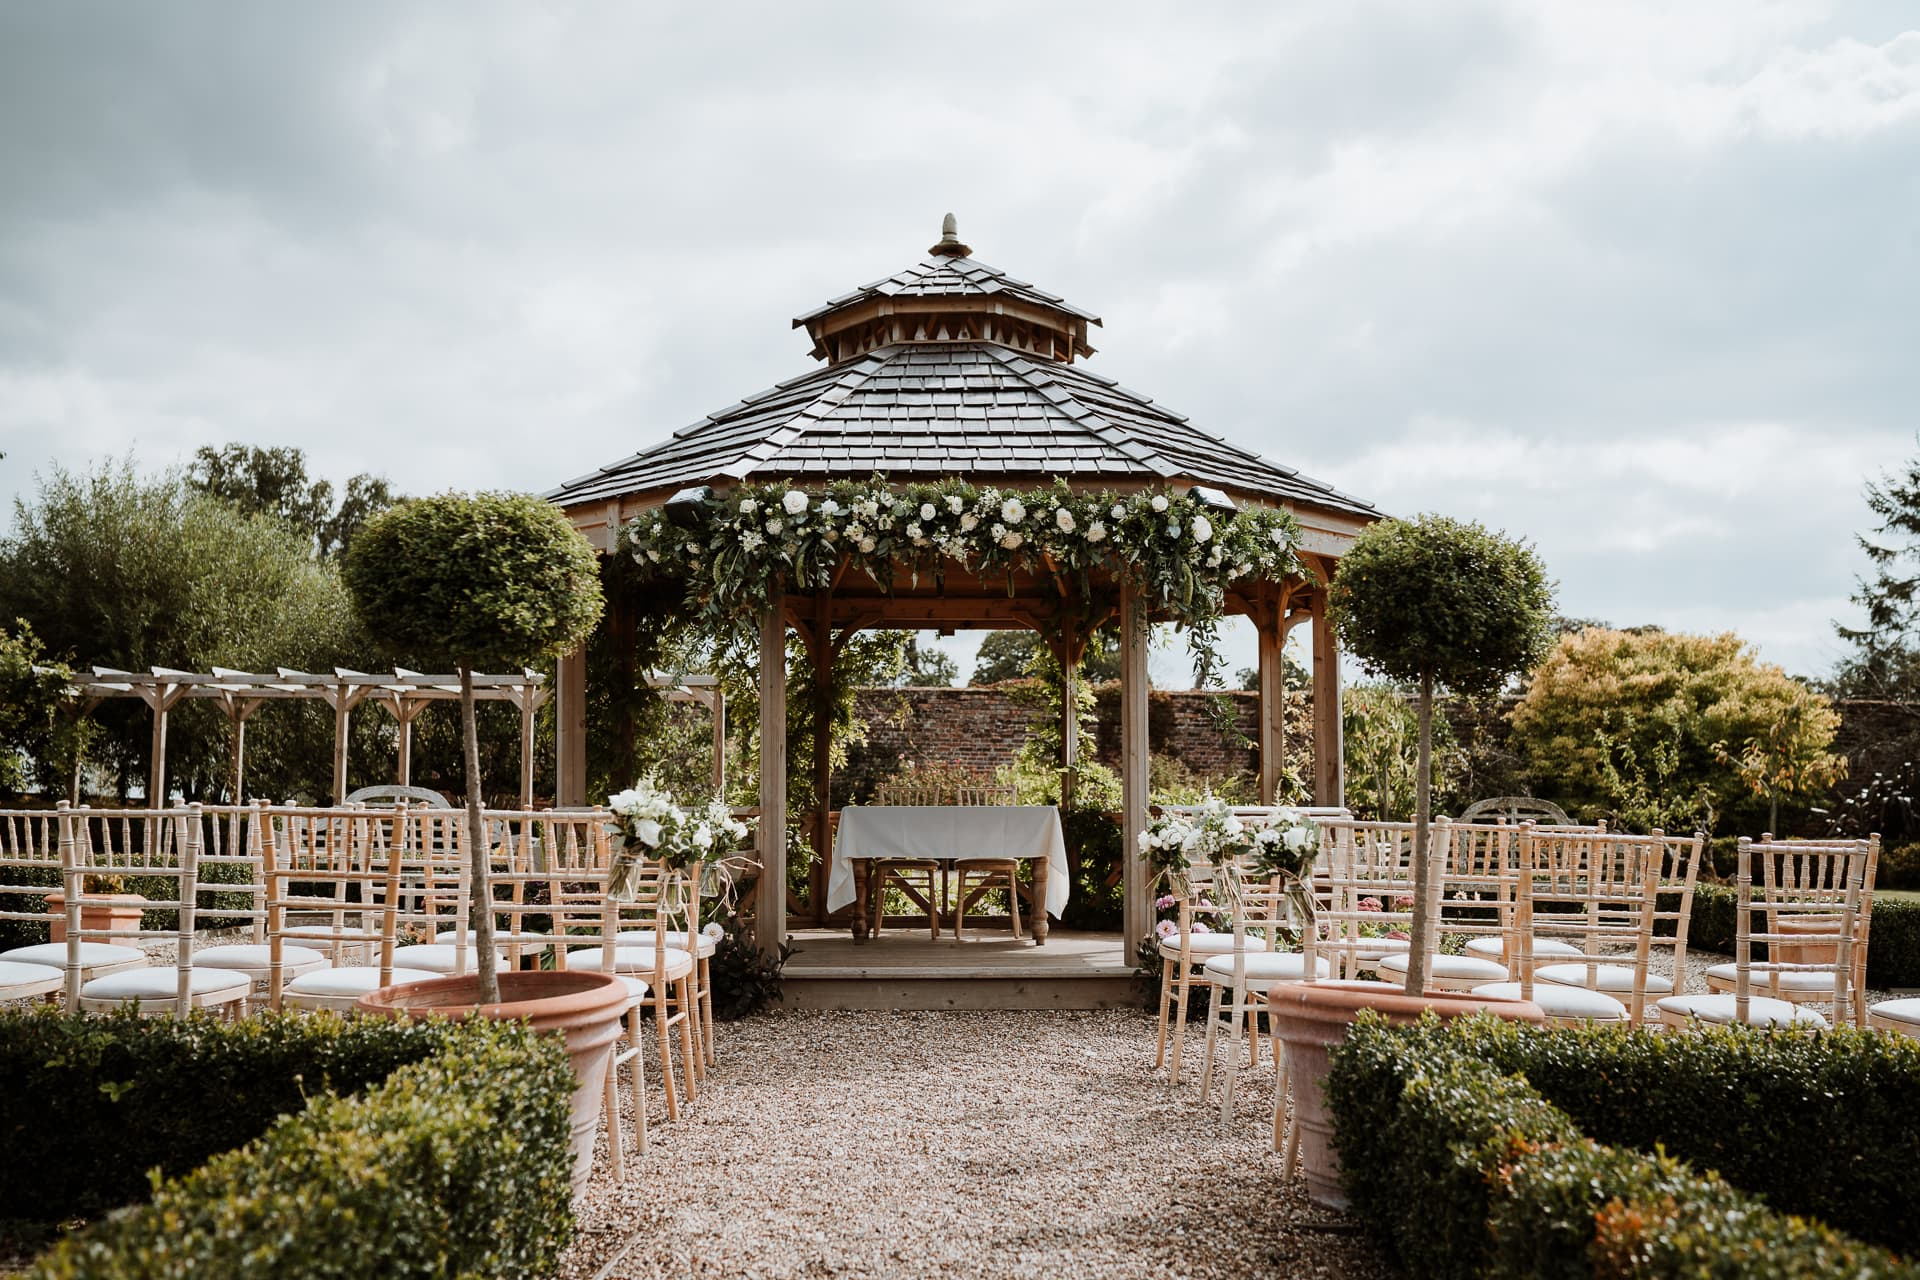 The Gazebo at The Secret Garden Wedding Venue decorated with green and white flowers for ceremony